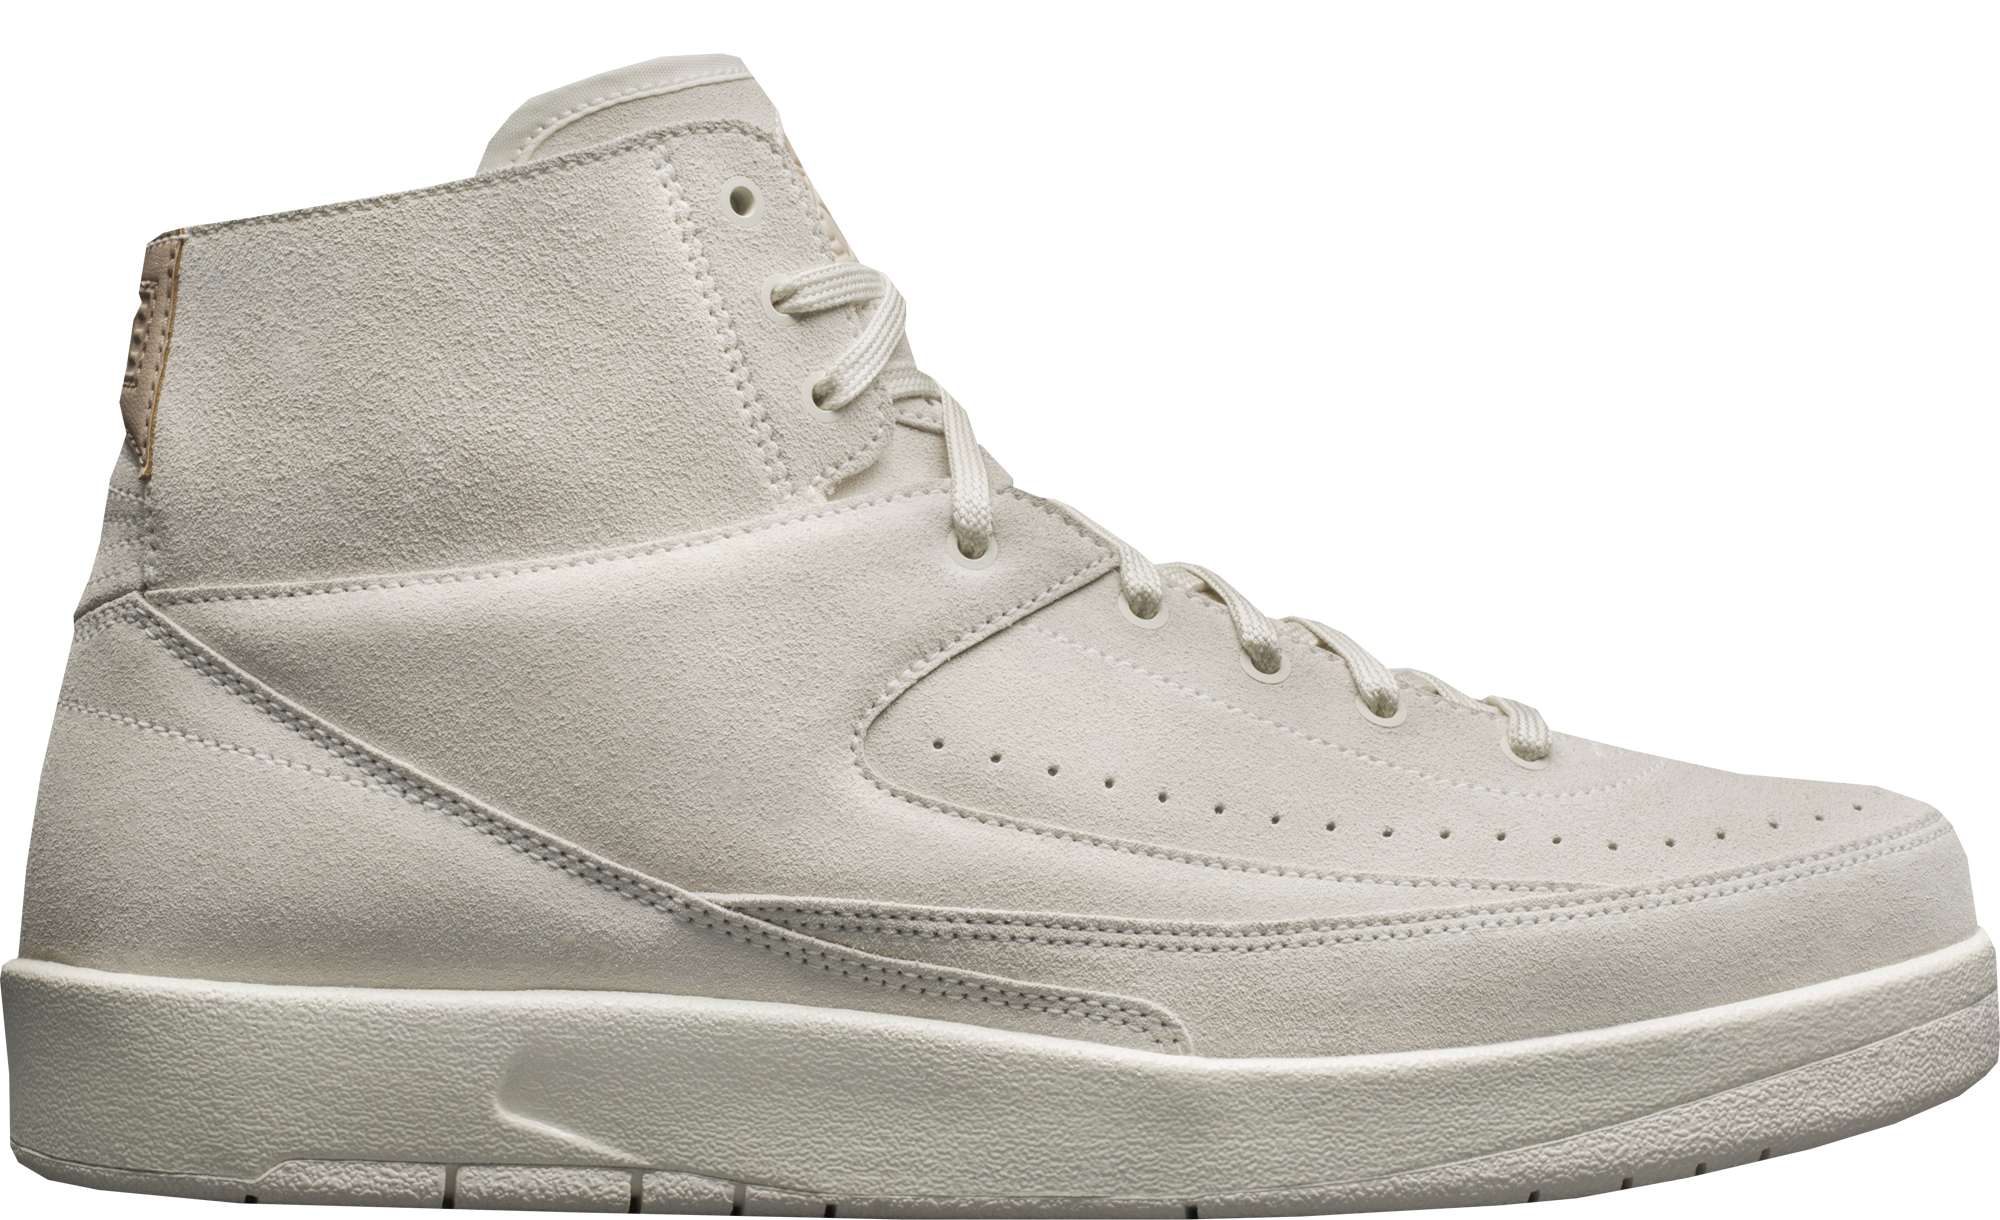 8dc414e385b1b0 Air Jordan 2 Retro Decon Sail Bio Beige 2017 Deconstructed